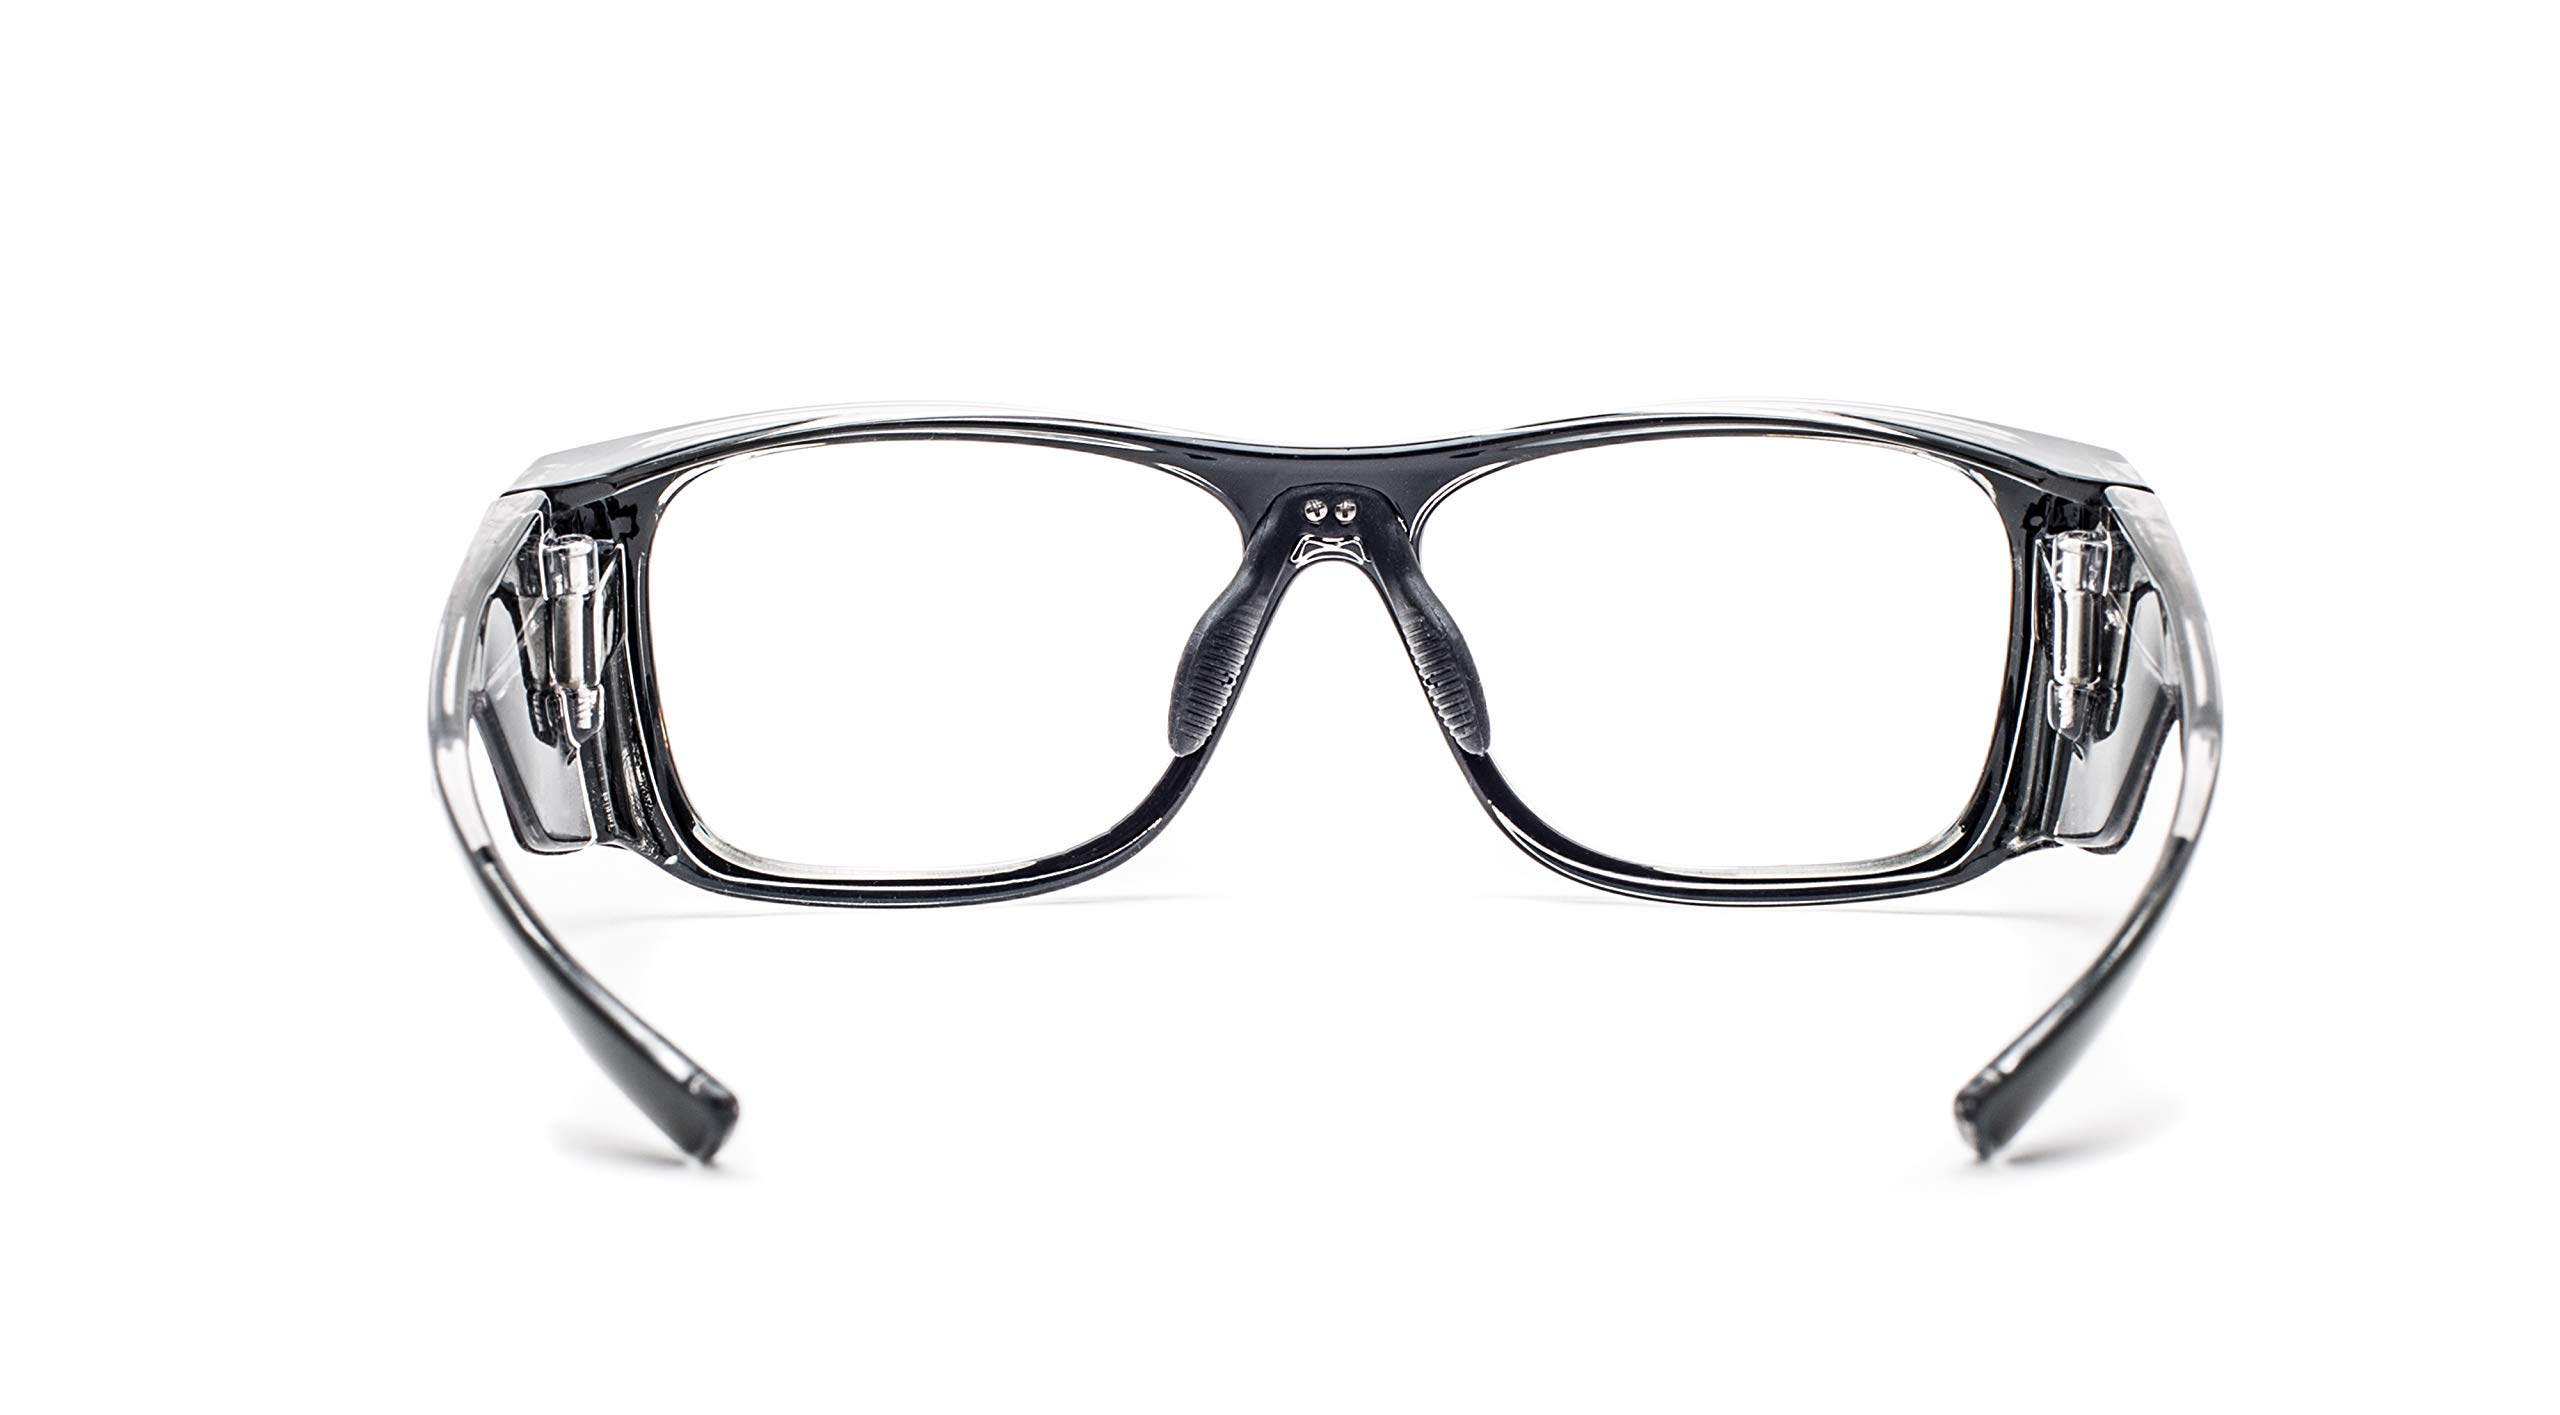 Leaded Glasses Radiation Safety Eyewear RG-15011-BK by Phillips Safety Products Inc. (Image #4)